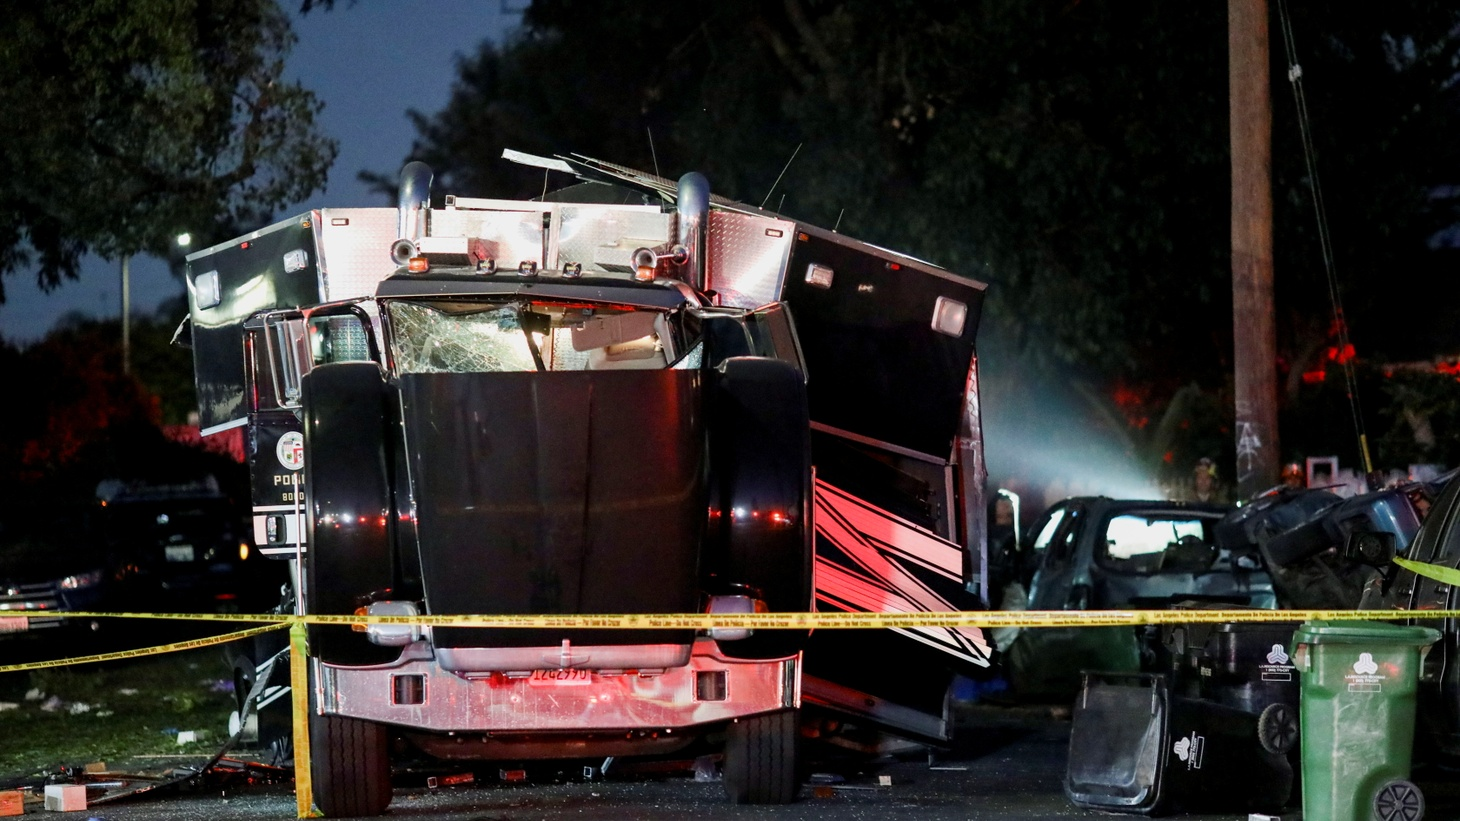 A damaged vehicle is seen at the site of an explosion after police attempted to safely detonate illegal fireworks that were seized, in Los Angeles, California, U.S., June 30, 2021.